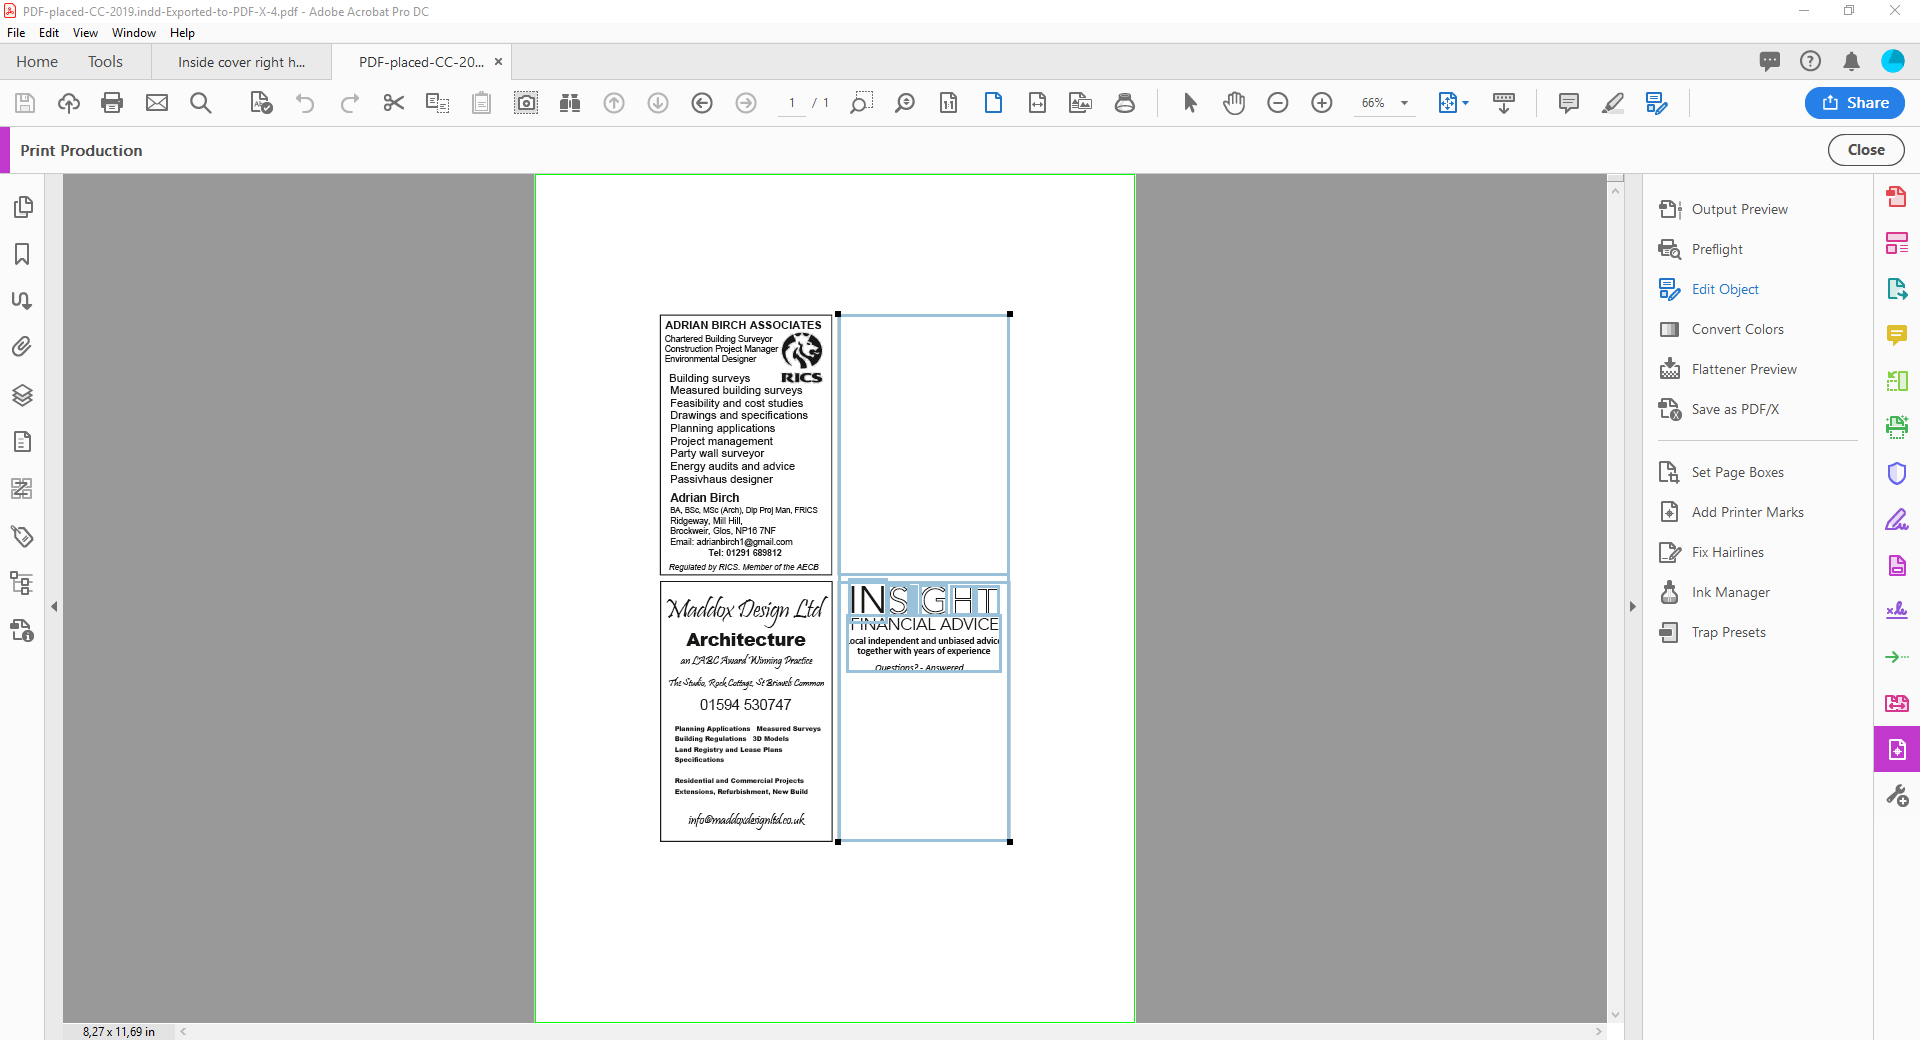 Exported-PDF-X-4-from-InDesign-CC-2019-Opened-in-Acrobat-1.PNG